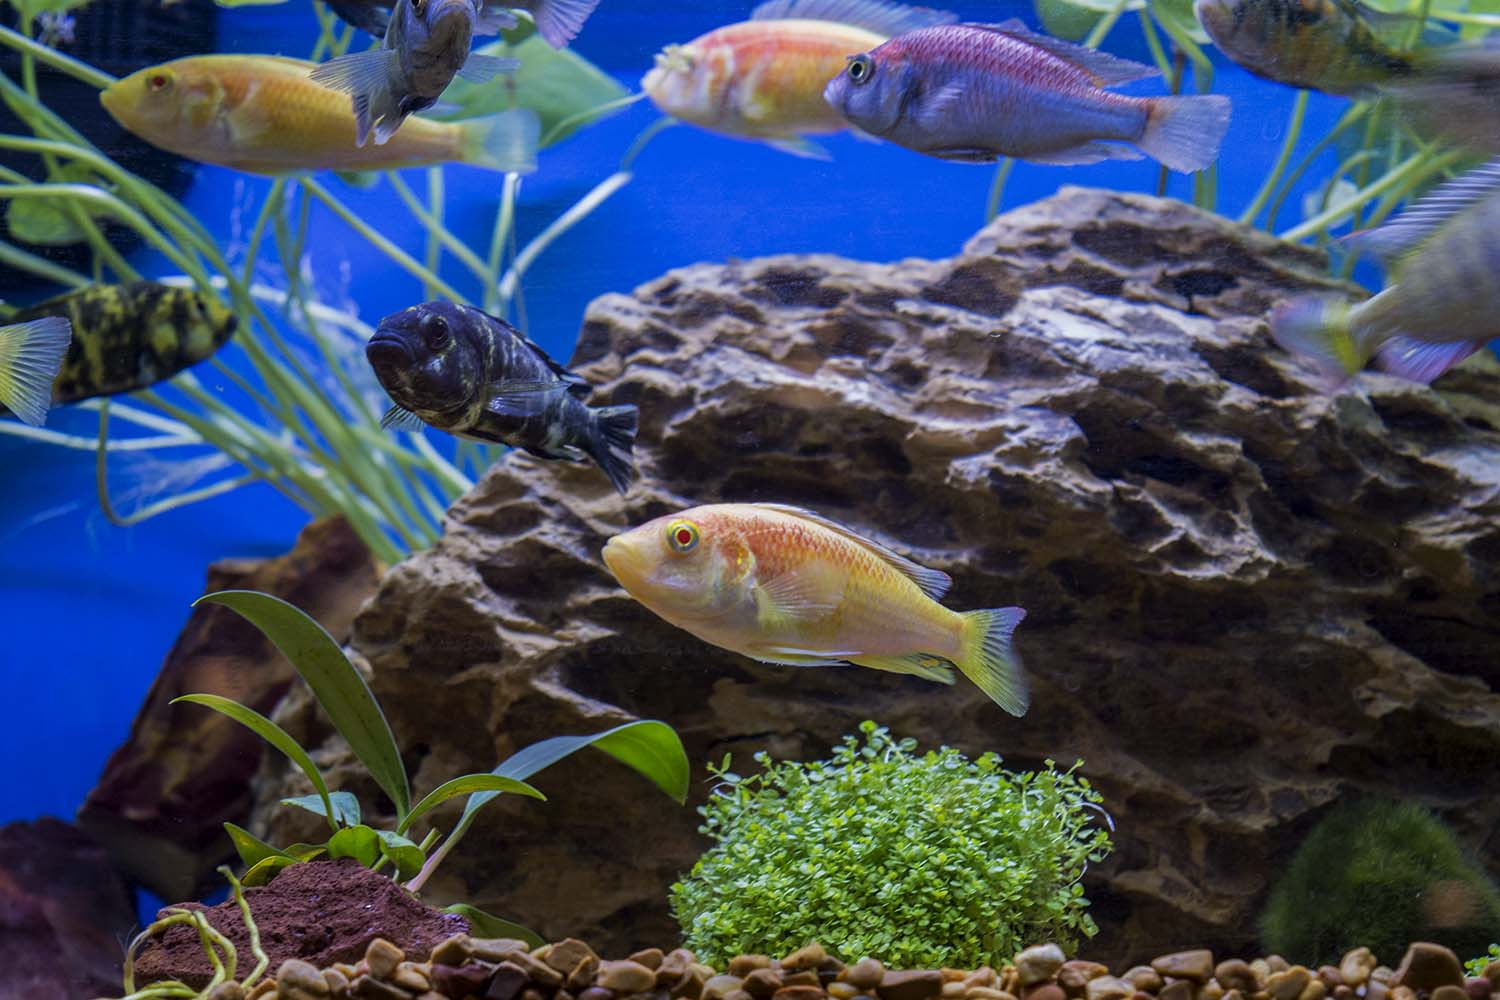 A nice group of Victorian Cichlids, including a new albino strain of Pundamilia nyerei (center) from Mike's Cichlids